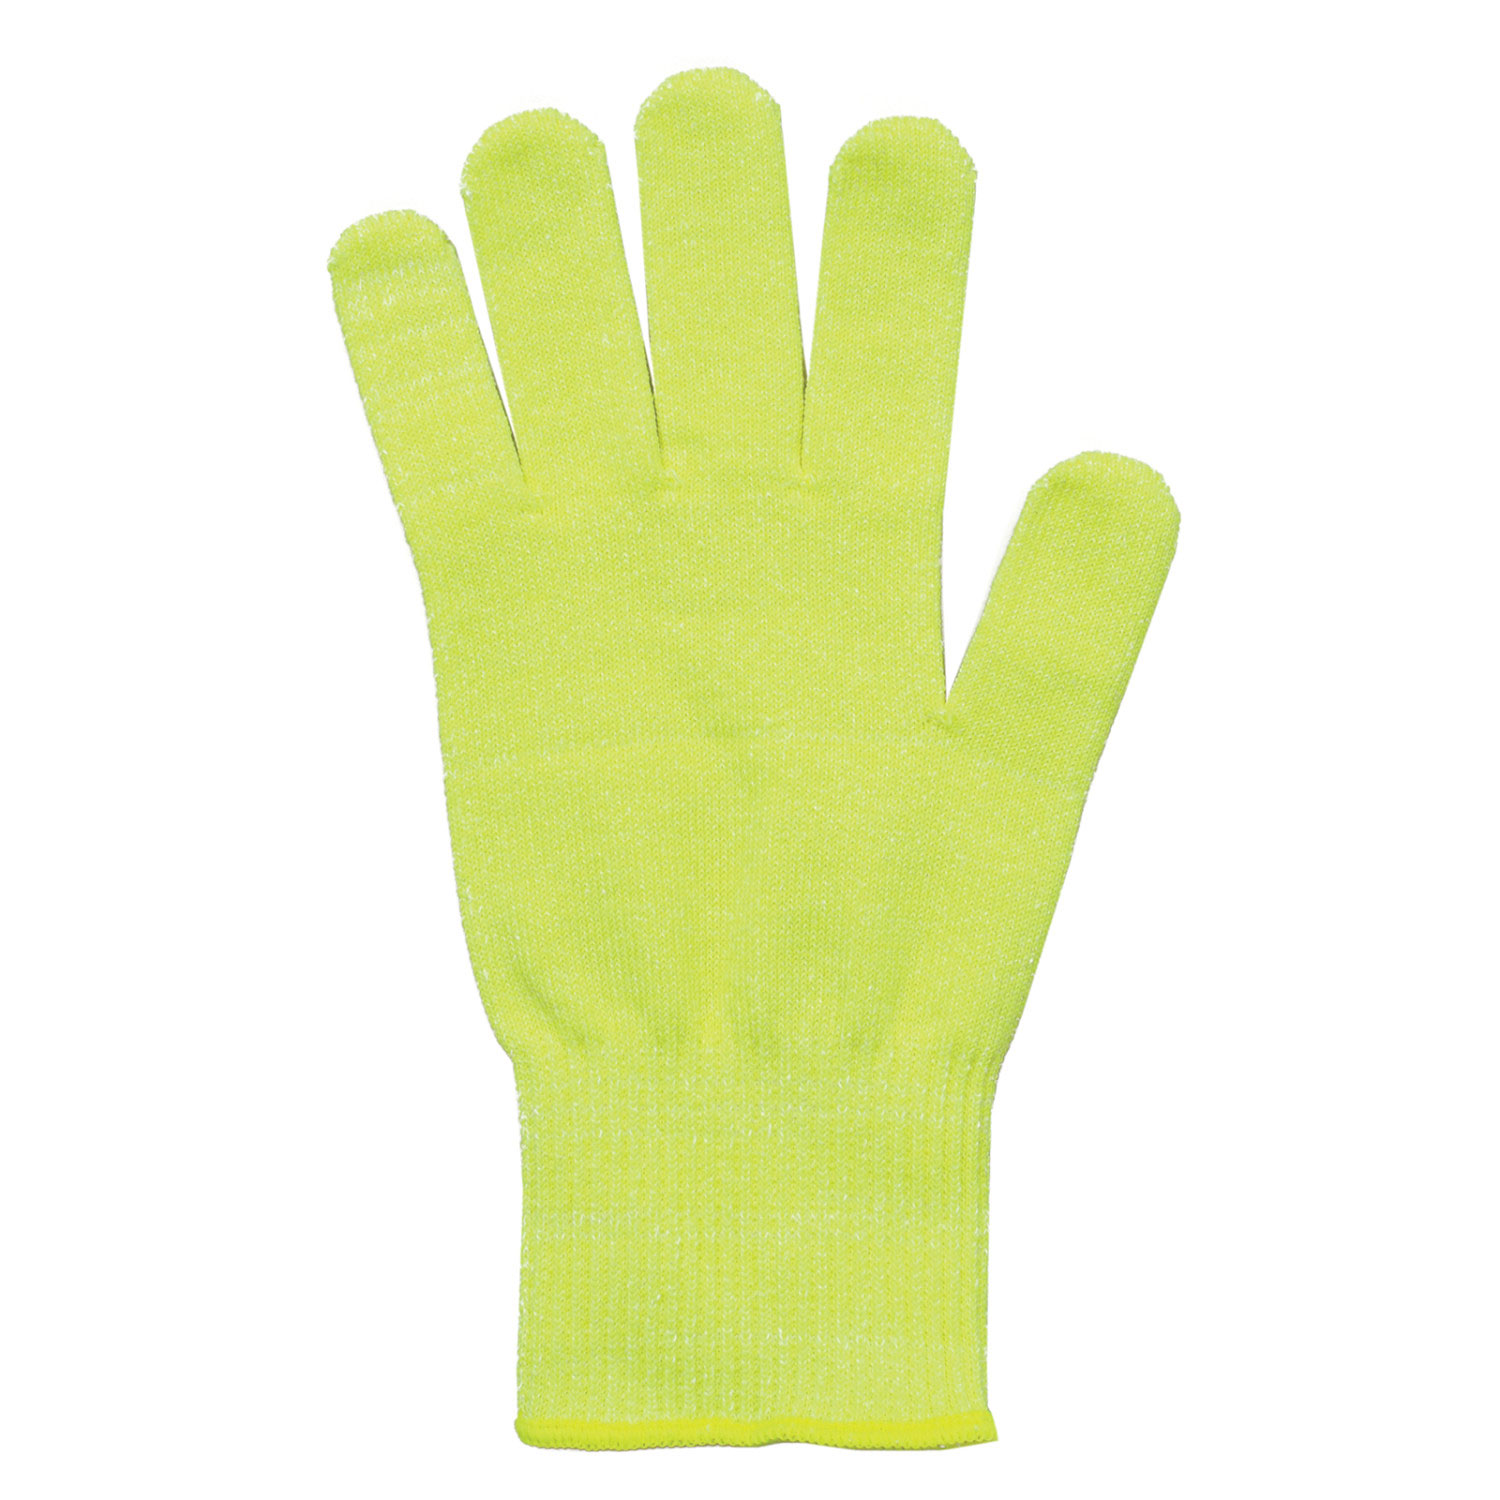 Buy Cut Resistant Gloves at KnifeCenter